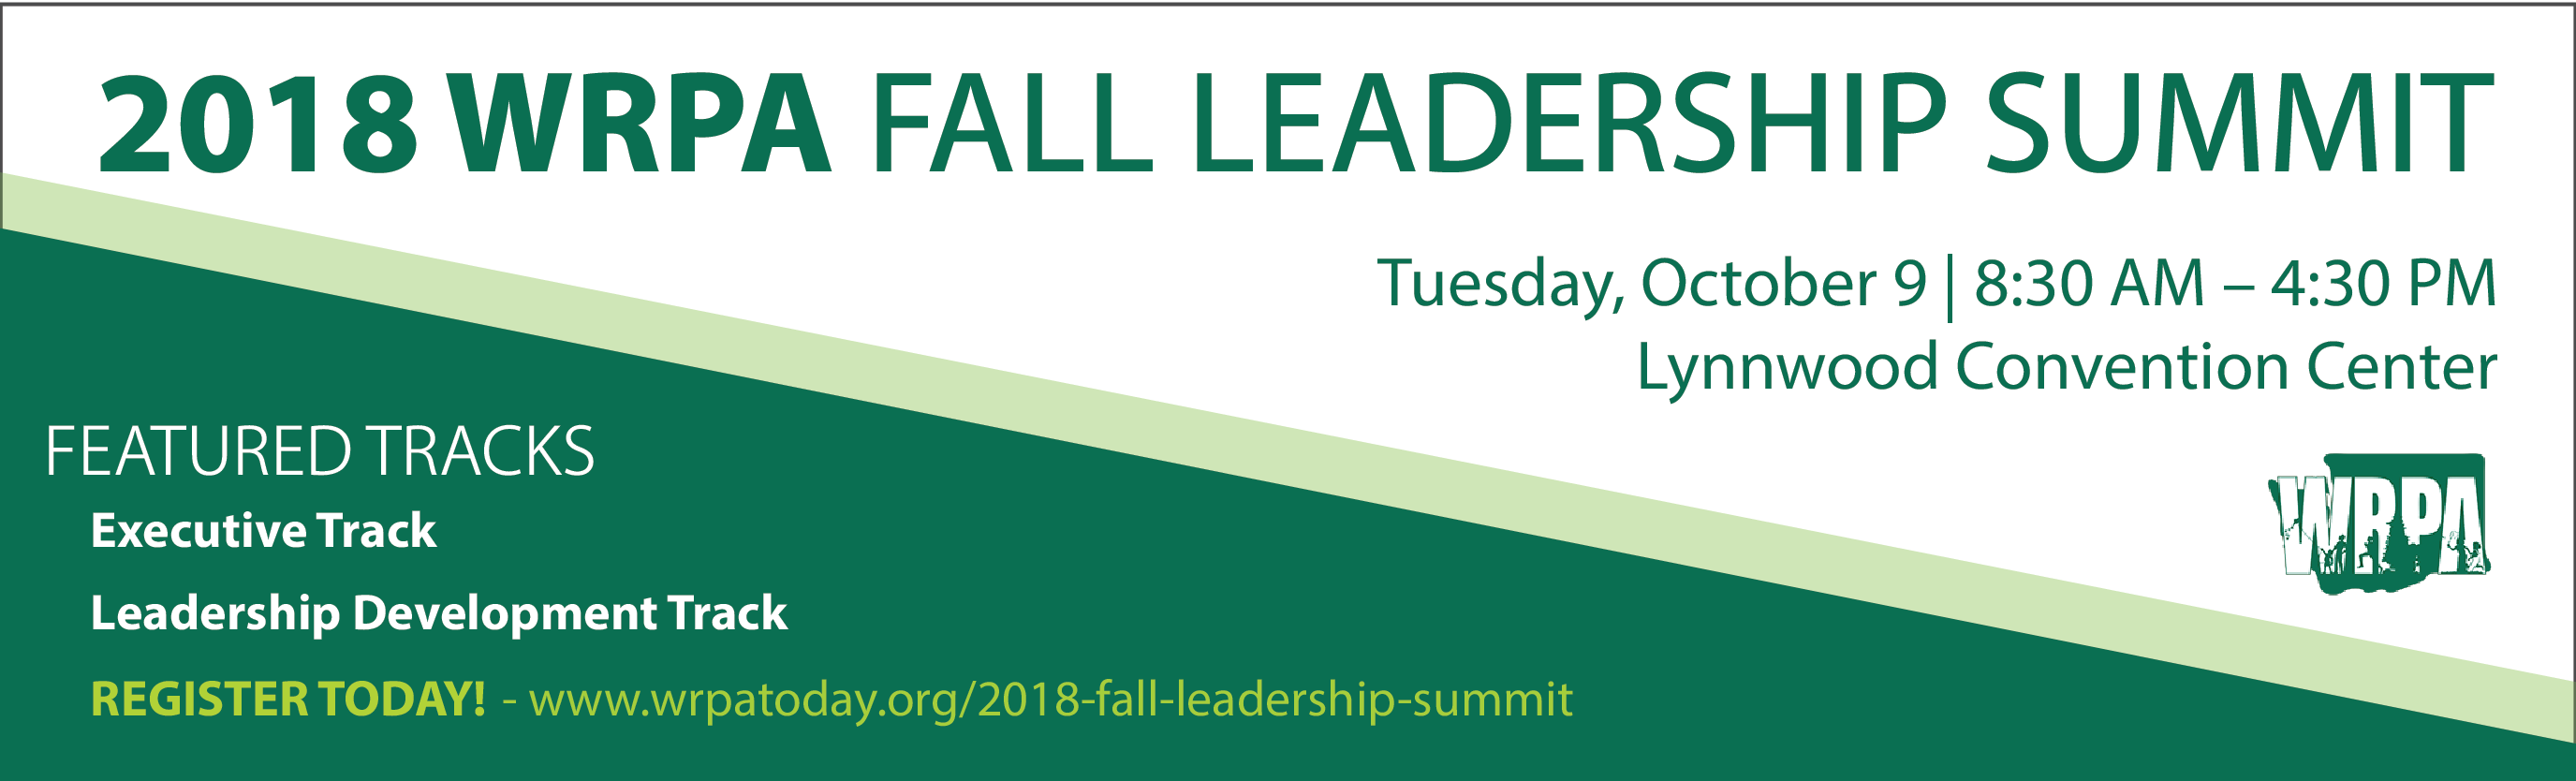 2018 WRPA Fall Leadership Summit